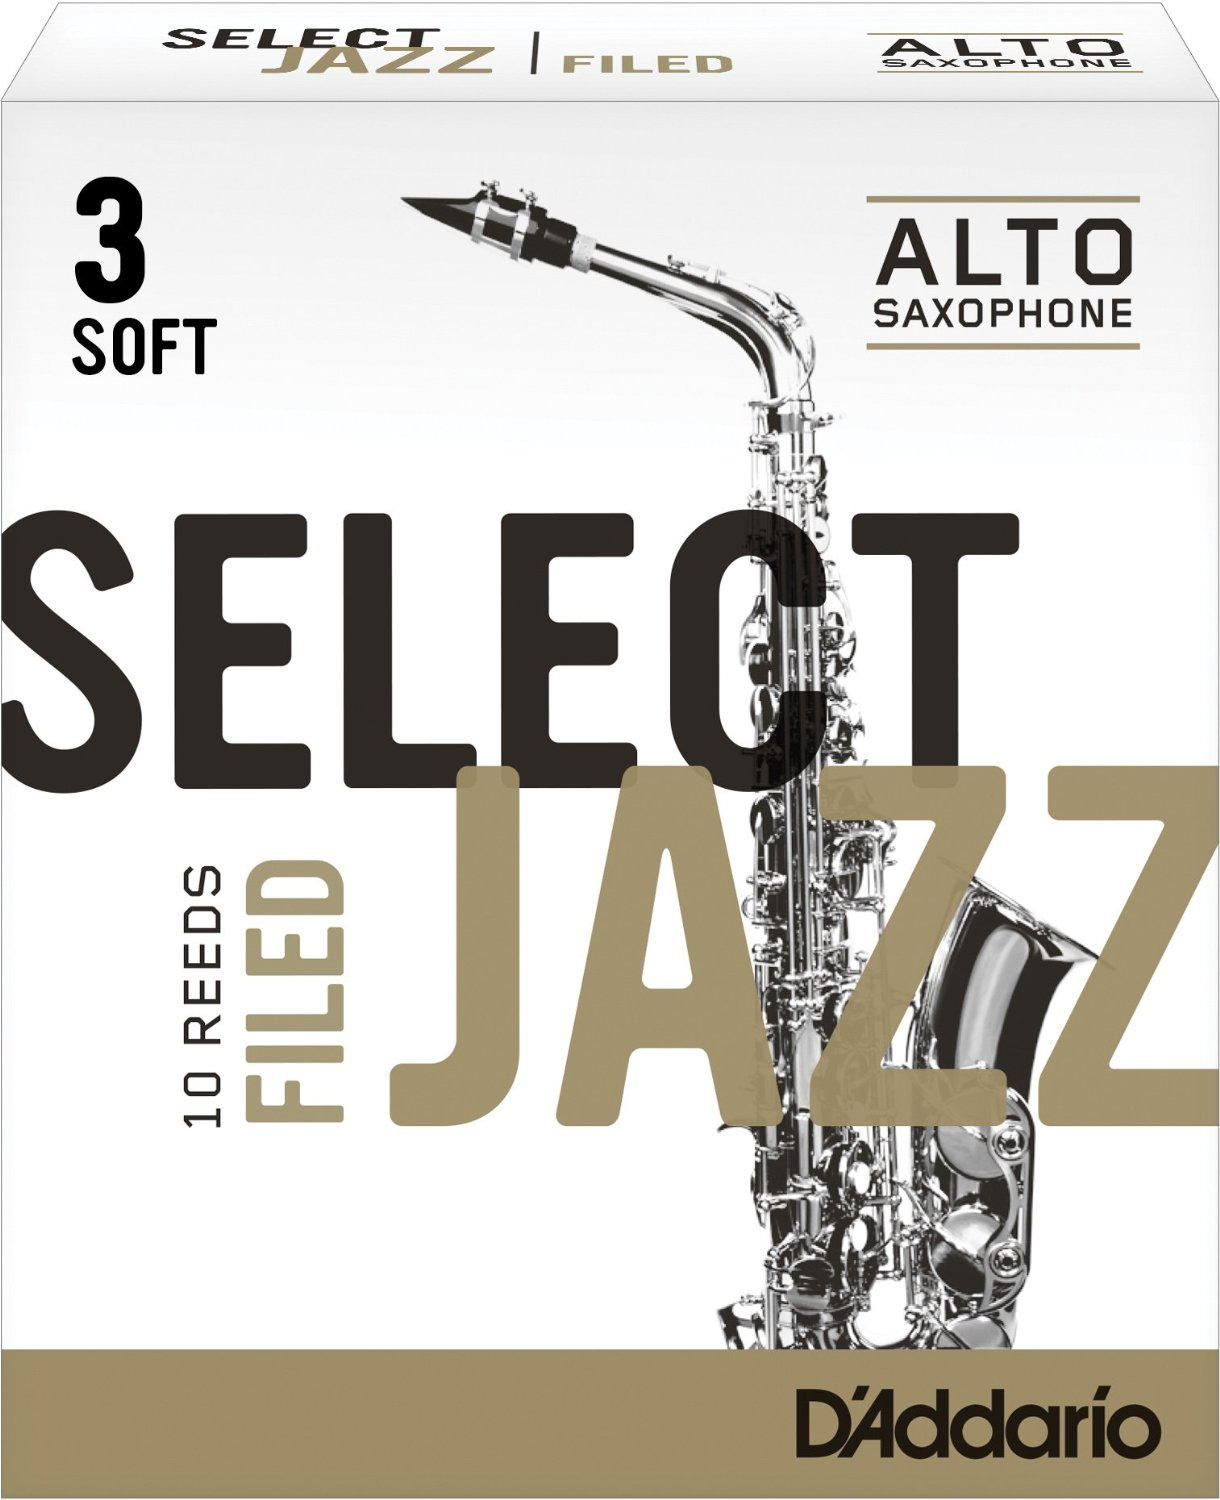 Daddario Select Jazz Filed Eb Alto Sax Reeds 10 ct 3 Strength by Rico